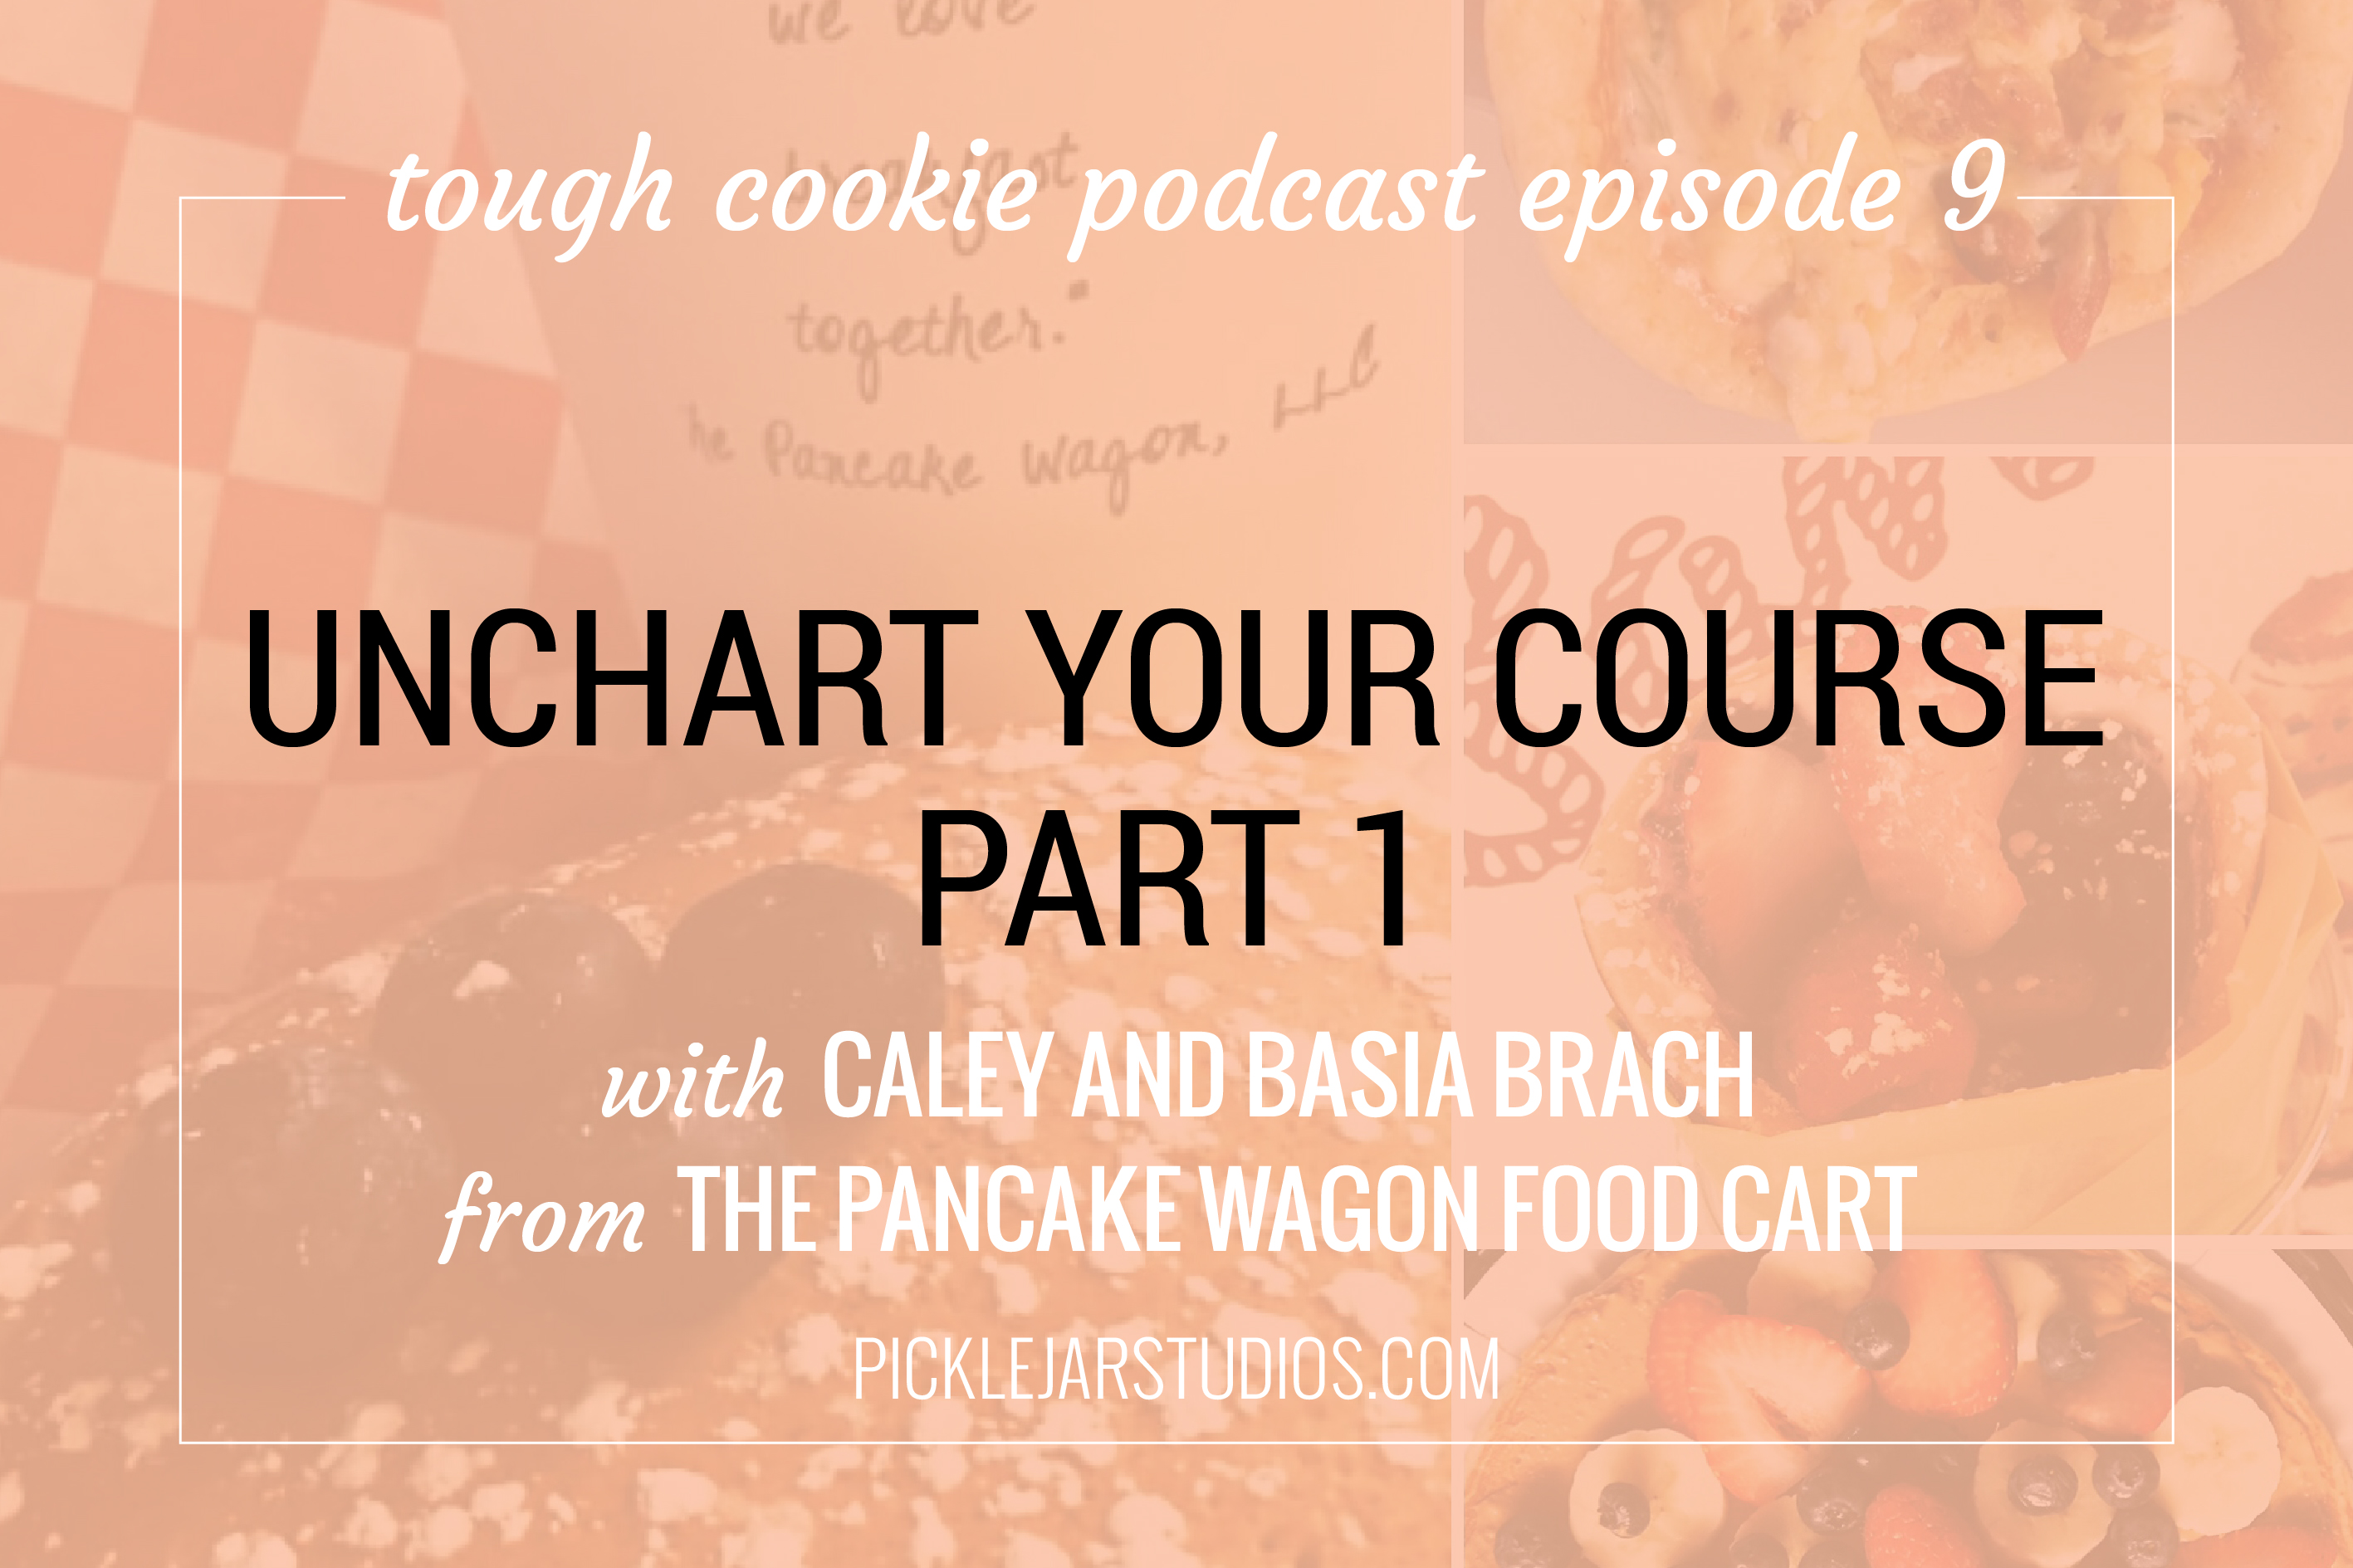 Tough Cookie Podcast episode 09 - pancake wagon